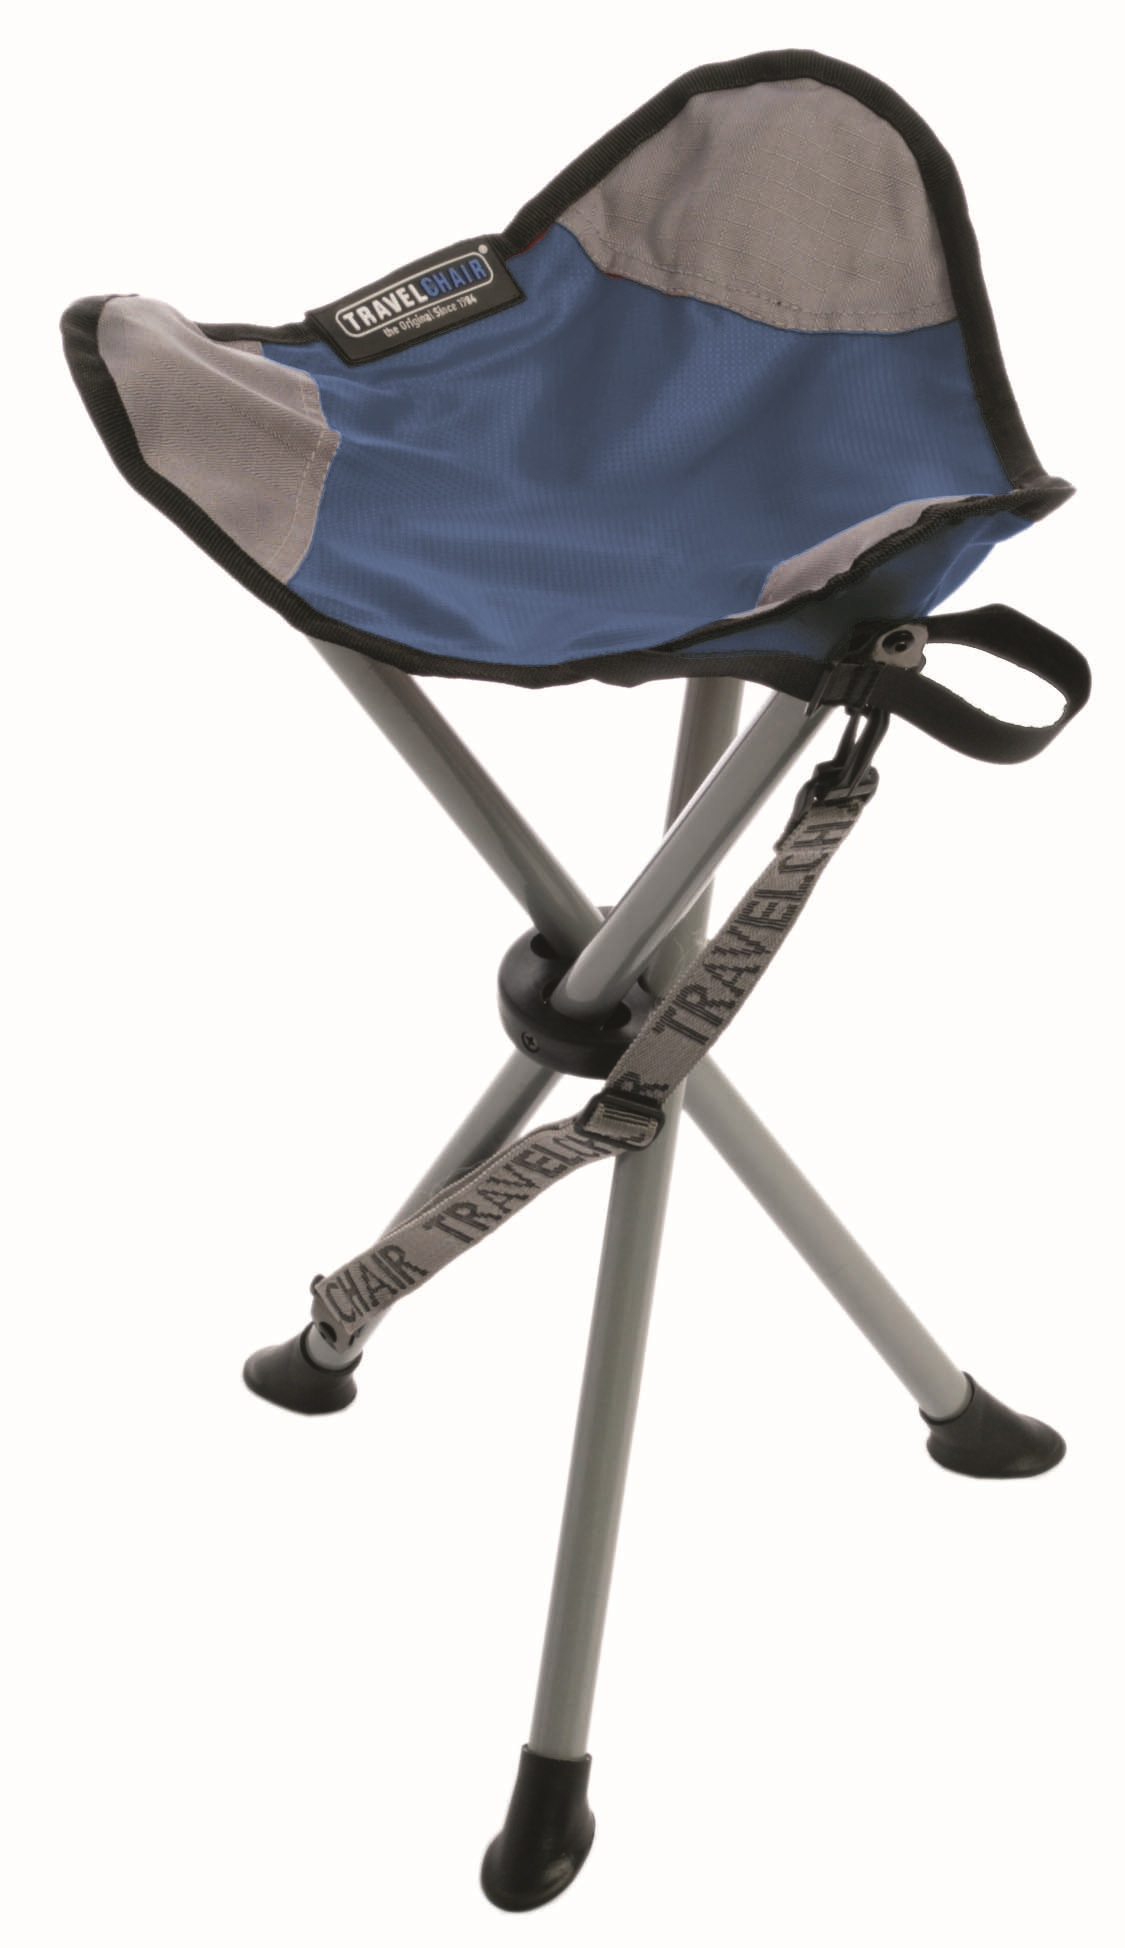 Go Chair Travel Chair Slacker Stool Blue